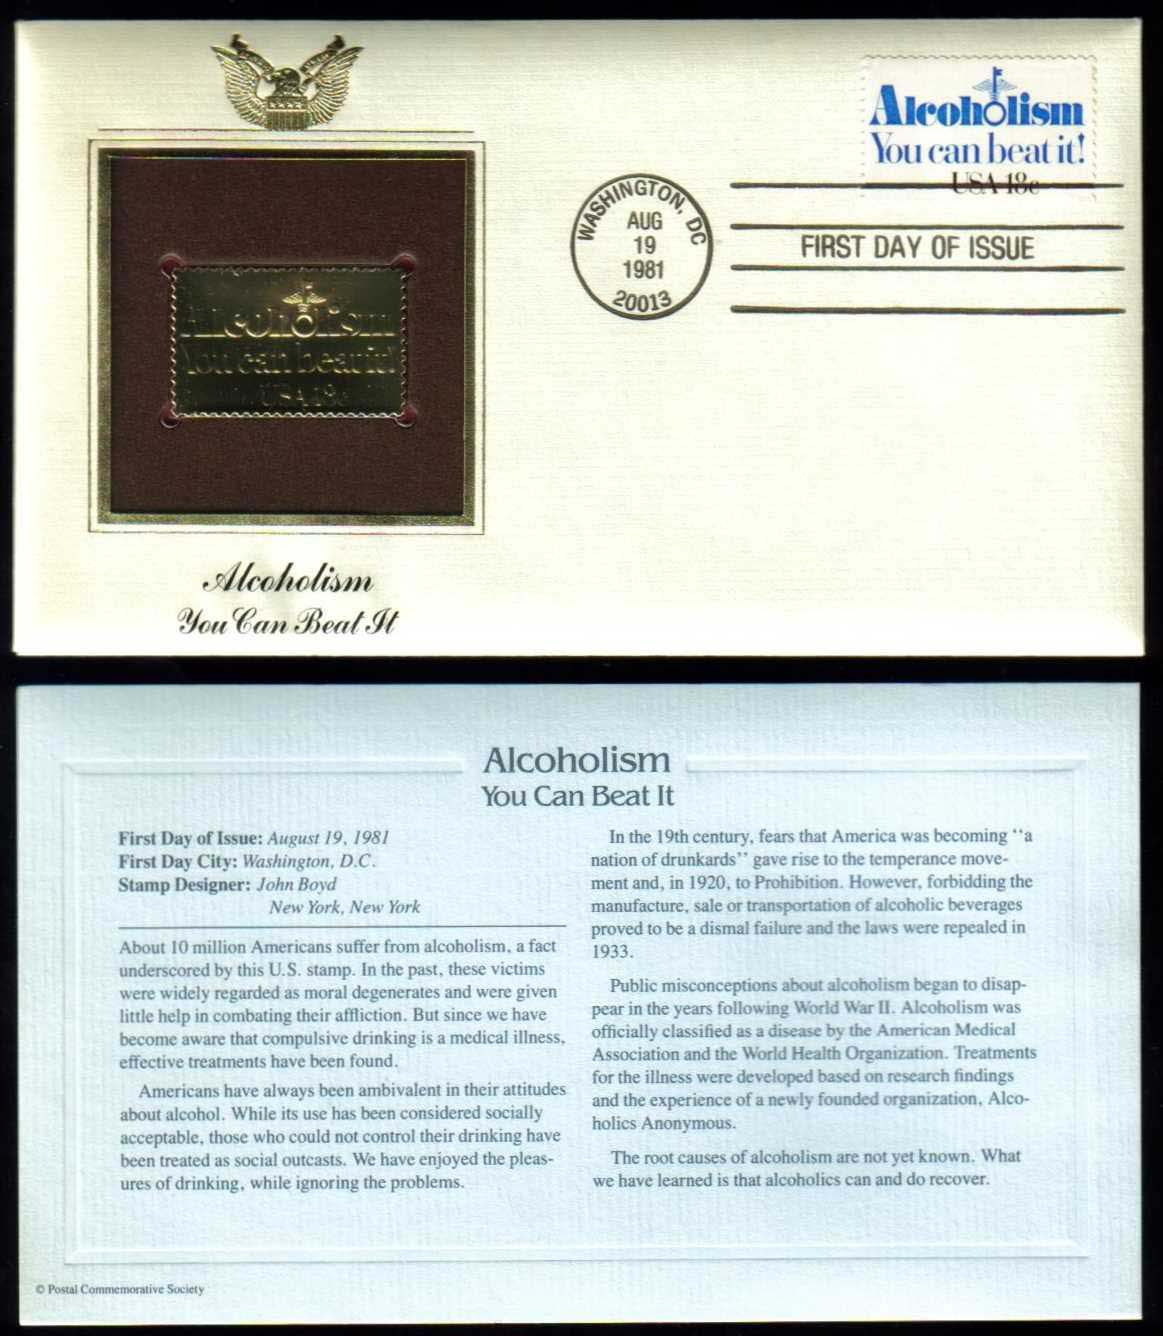 Scott 1927 Golden Replica (22Kt) unaddressed FDC <p> <a href=&quot;/images/USA-Scott-1927-Gold.jpg&quot;><font color=green><b>View the image</a></b></font>